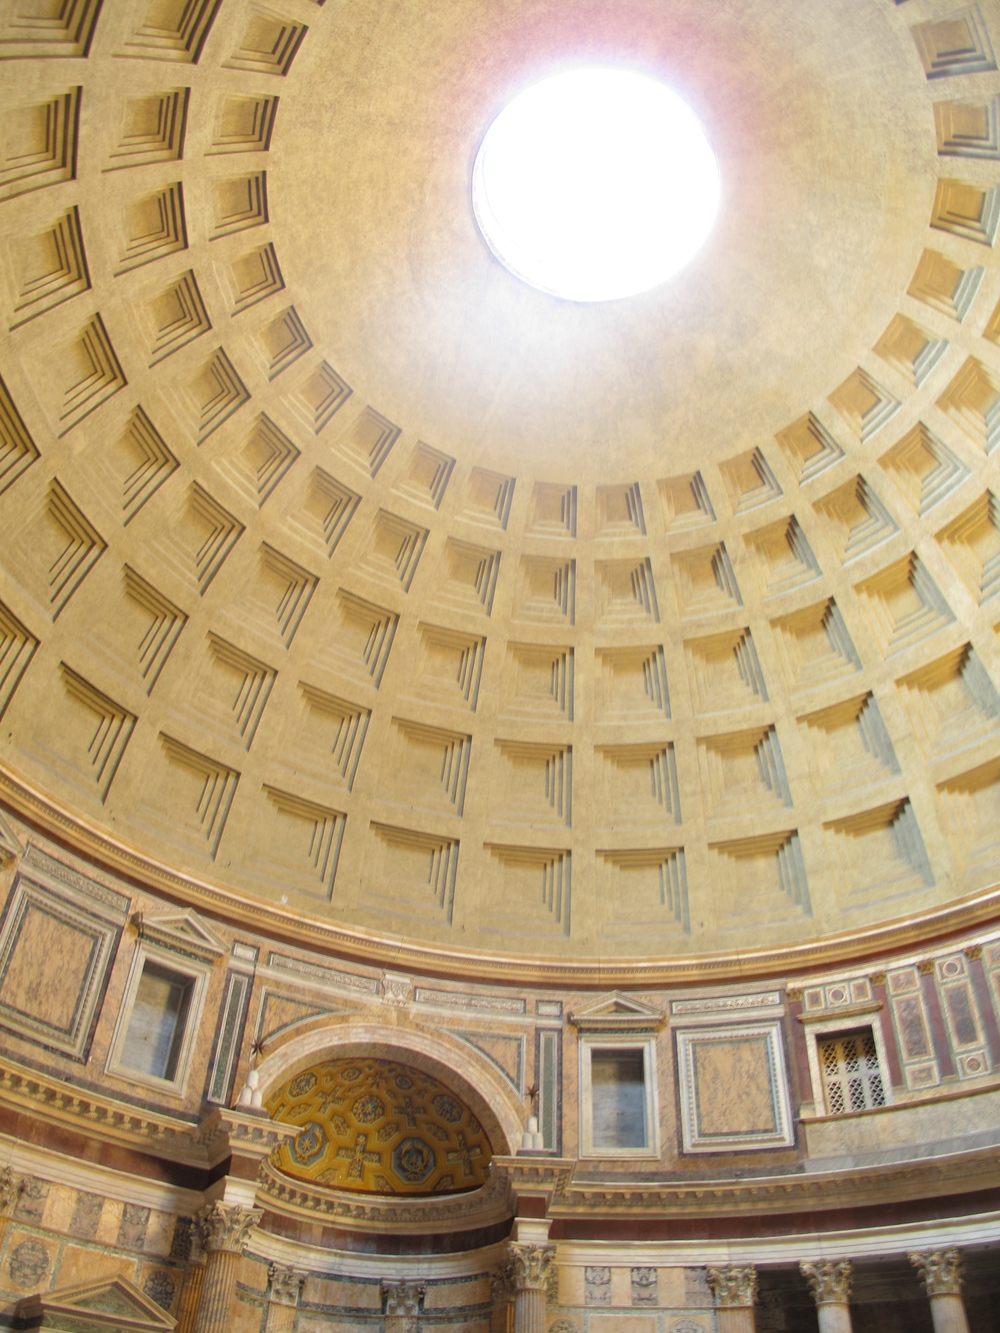 The ceiling of the Pantheon in Rome, with a hole in the centre